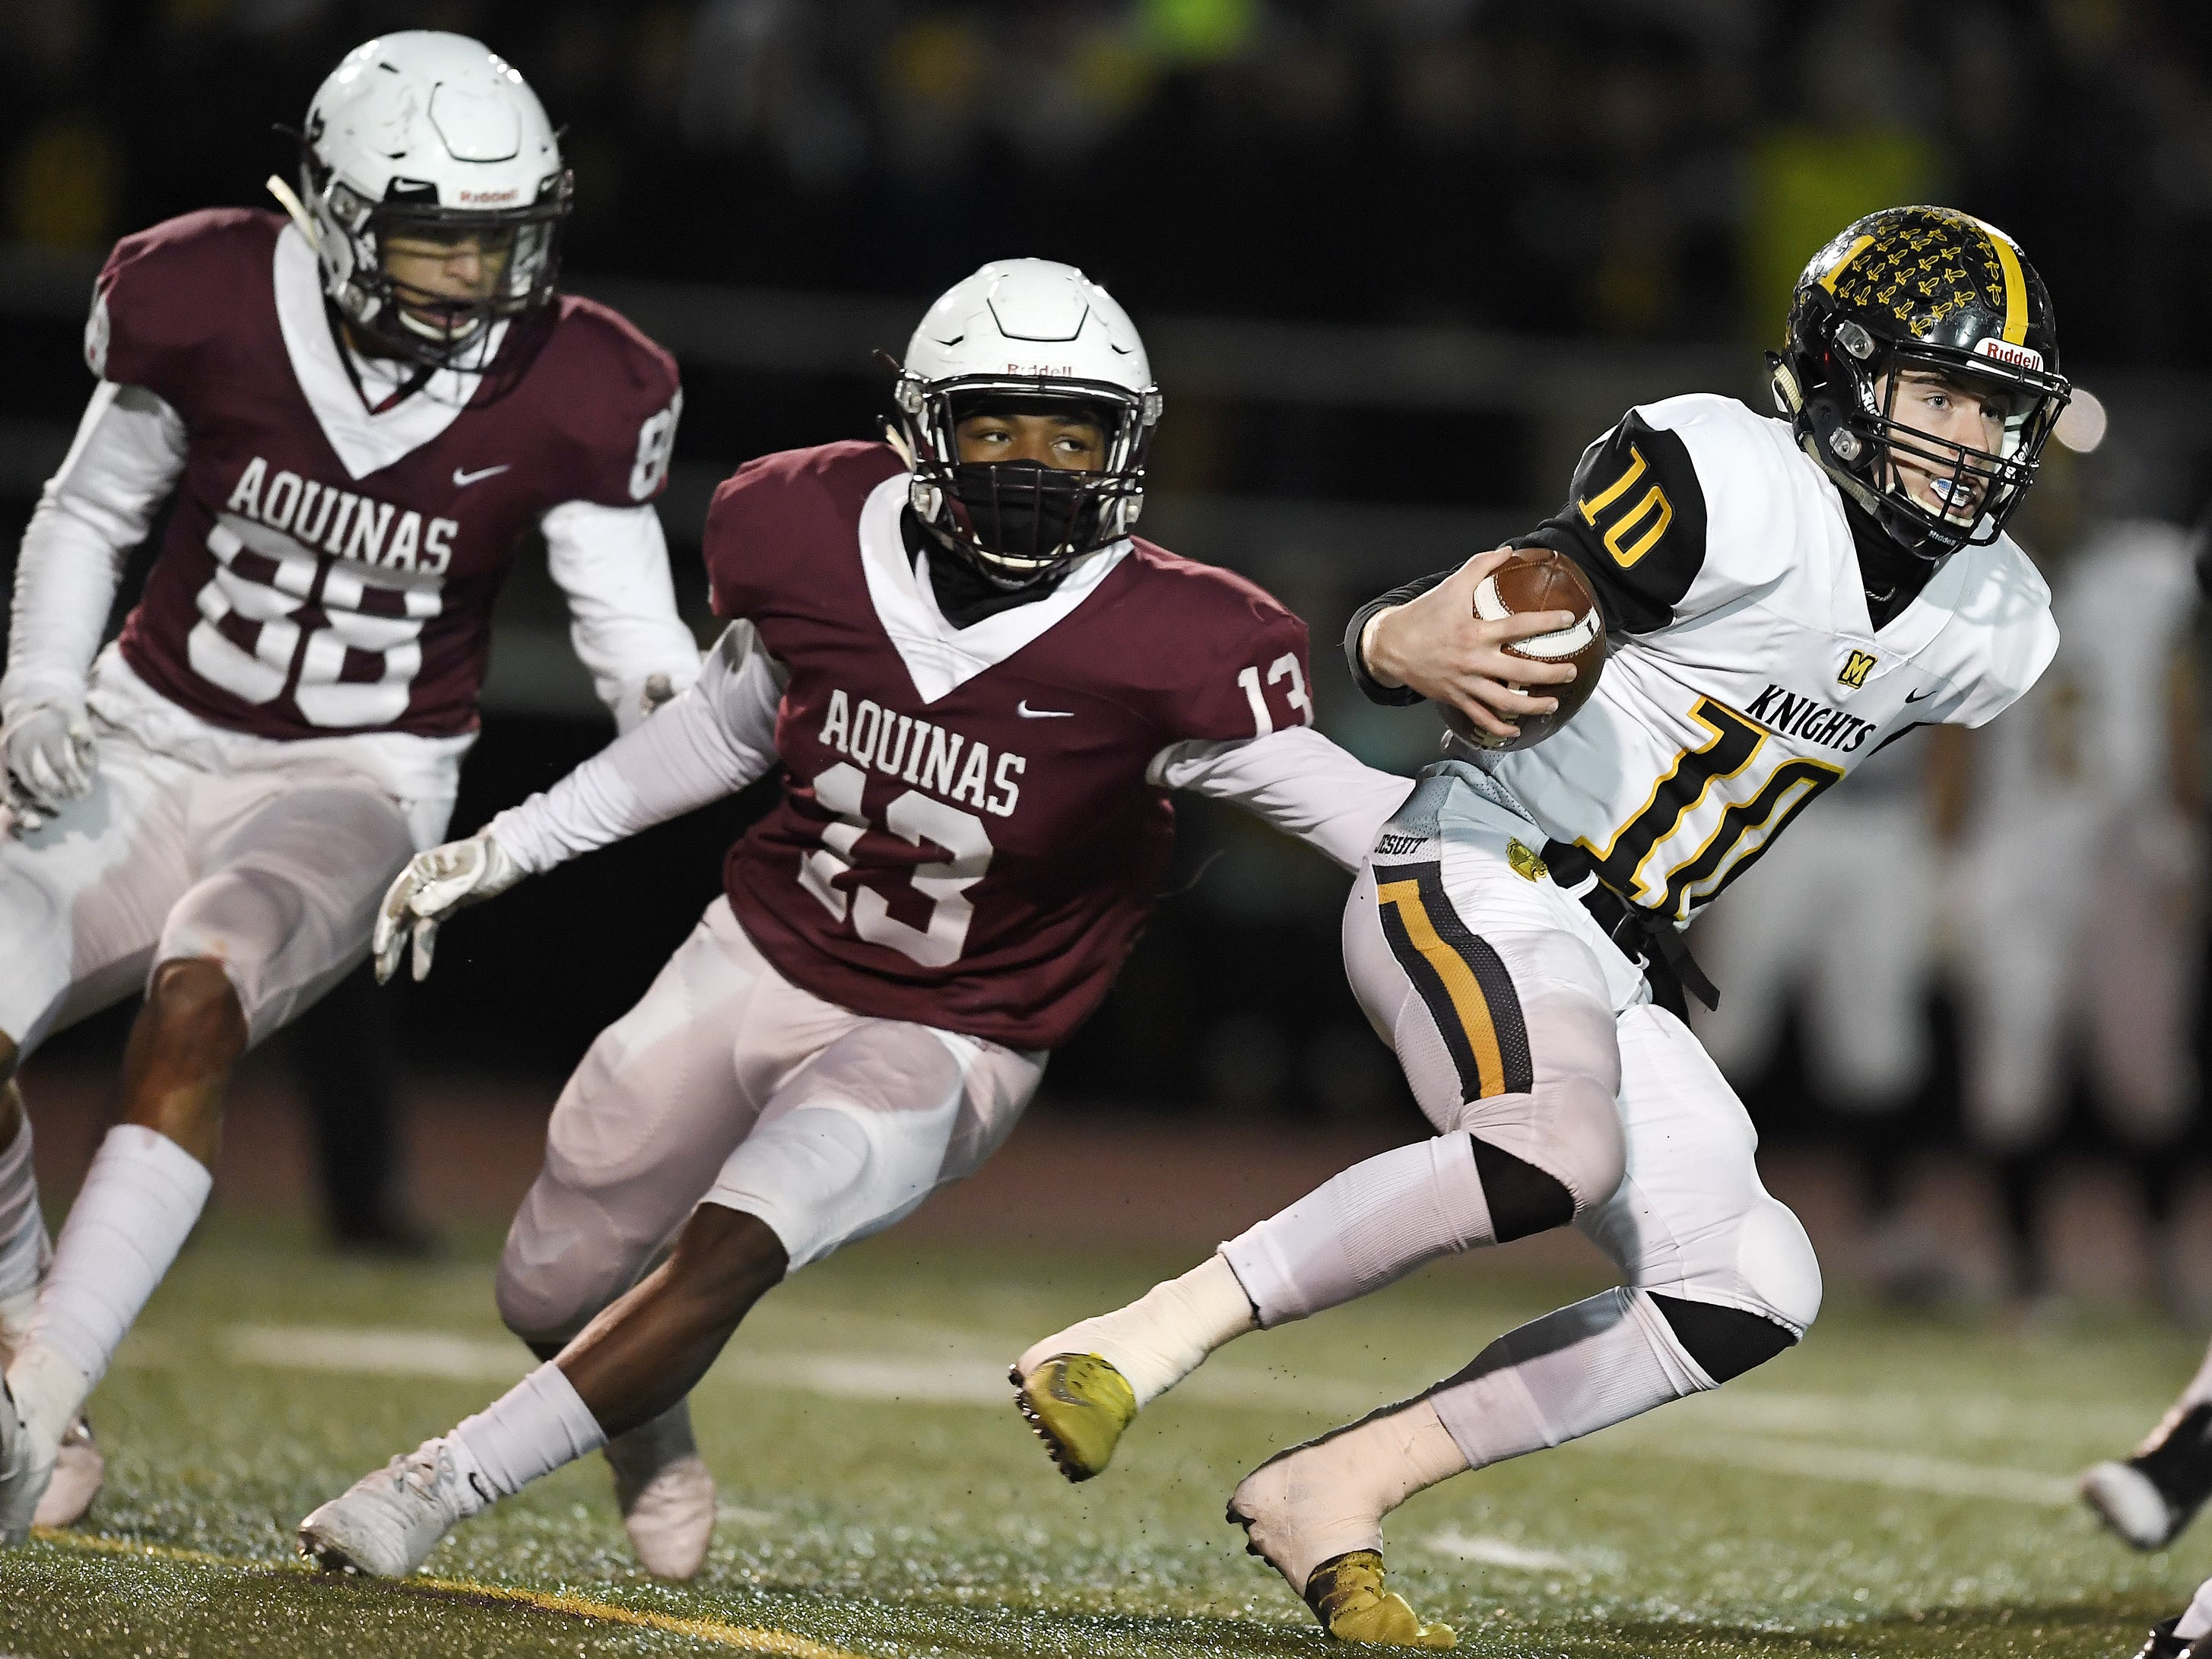 McQuaid's Hunter Walsh, right, tries to elude the pressure by Aquinas' Will Benjamin (13) and Steve Mahar (88) during the Section V Class AA championship game at SUNY Brockport, Saturday, Nov. 3, 2018. Aquinas won the Class AA title with a 49-18 win over McQuaid.